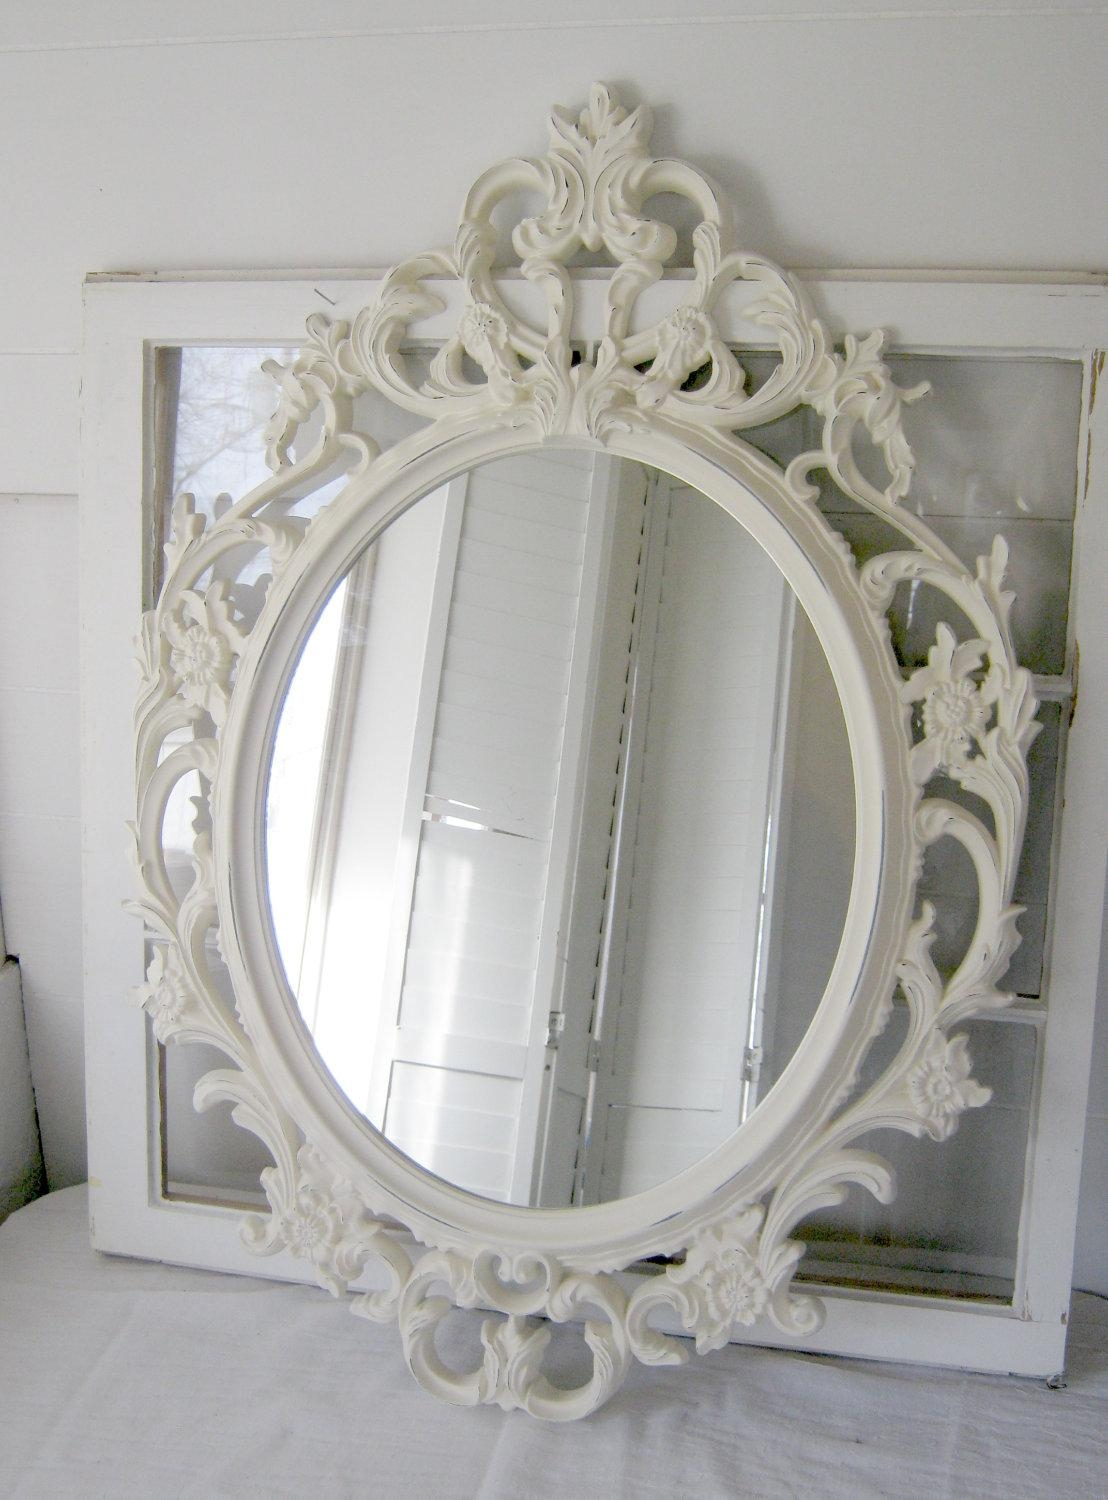 Target Mirrors Bathroom – Home Design Ideas And Pictures Pertaining To Small Baroque Mirror (Image 19 of 20)